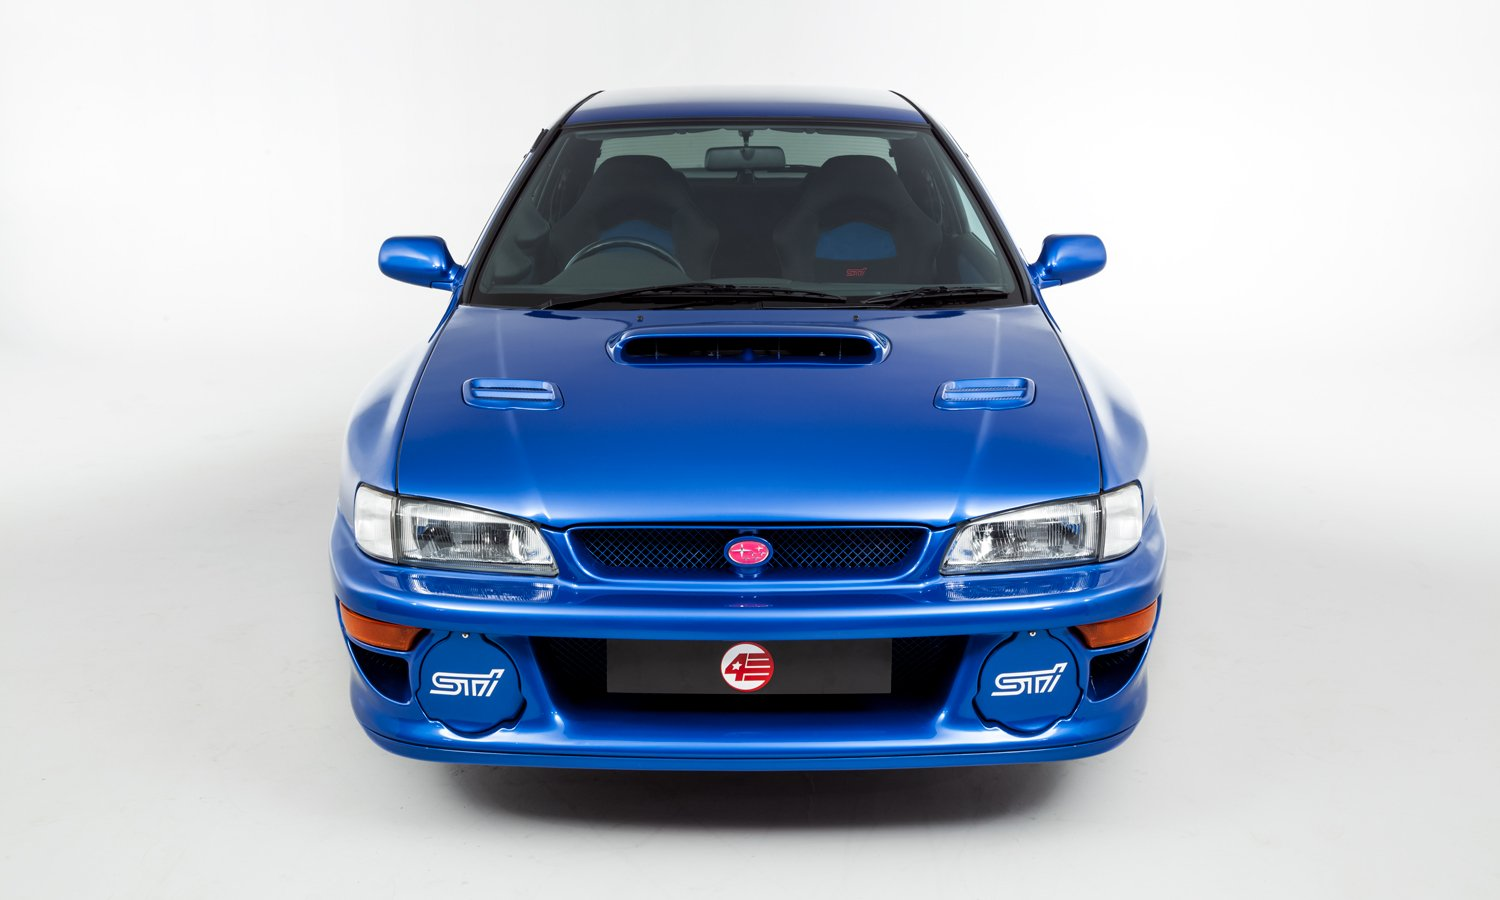 Subaru-Impreza-22B-STi-1998-for-sale-3